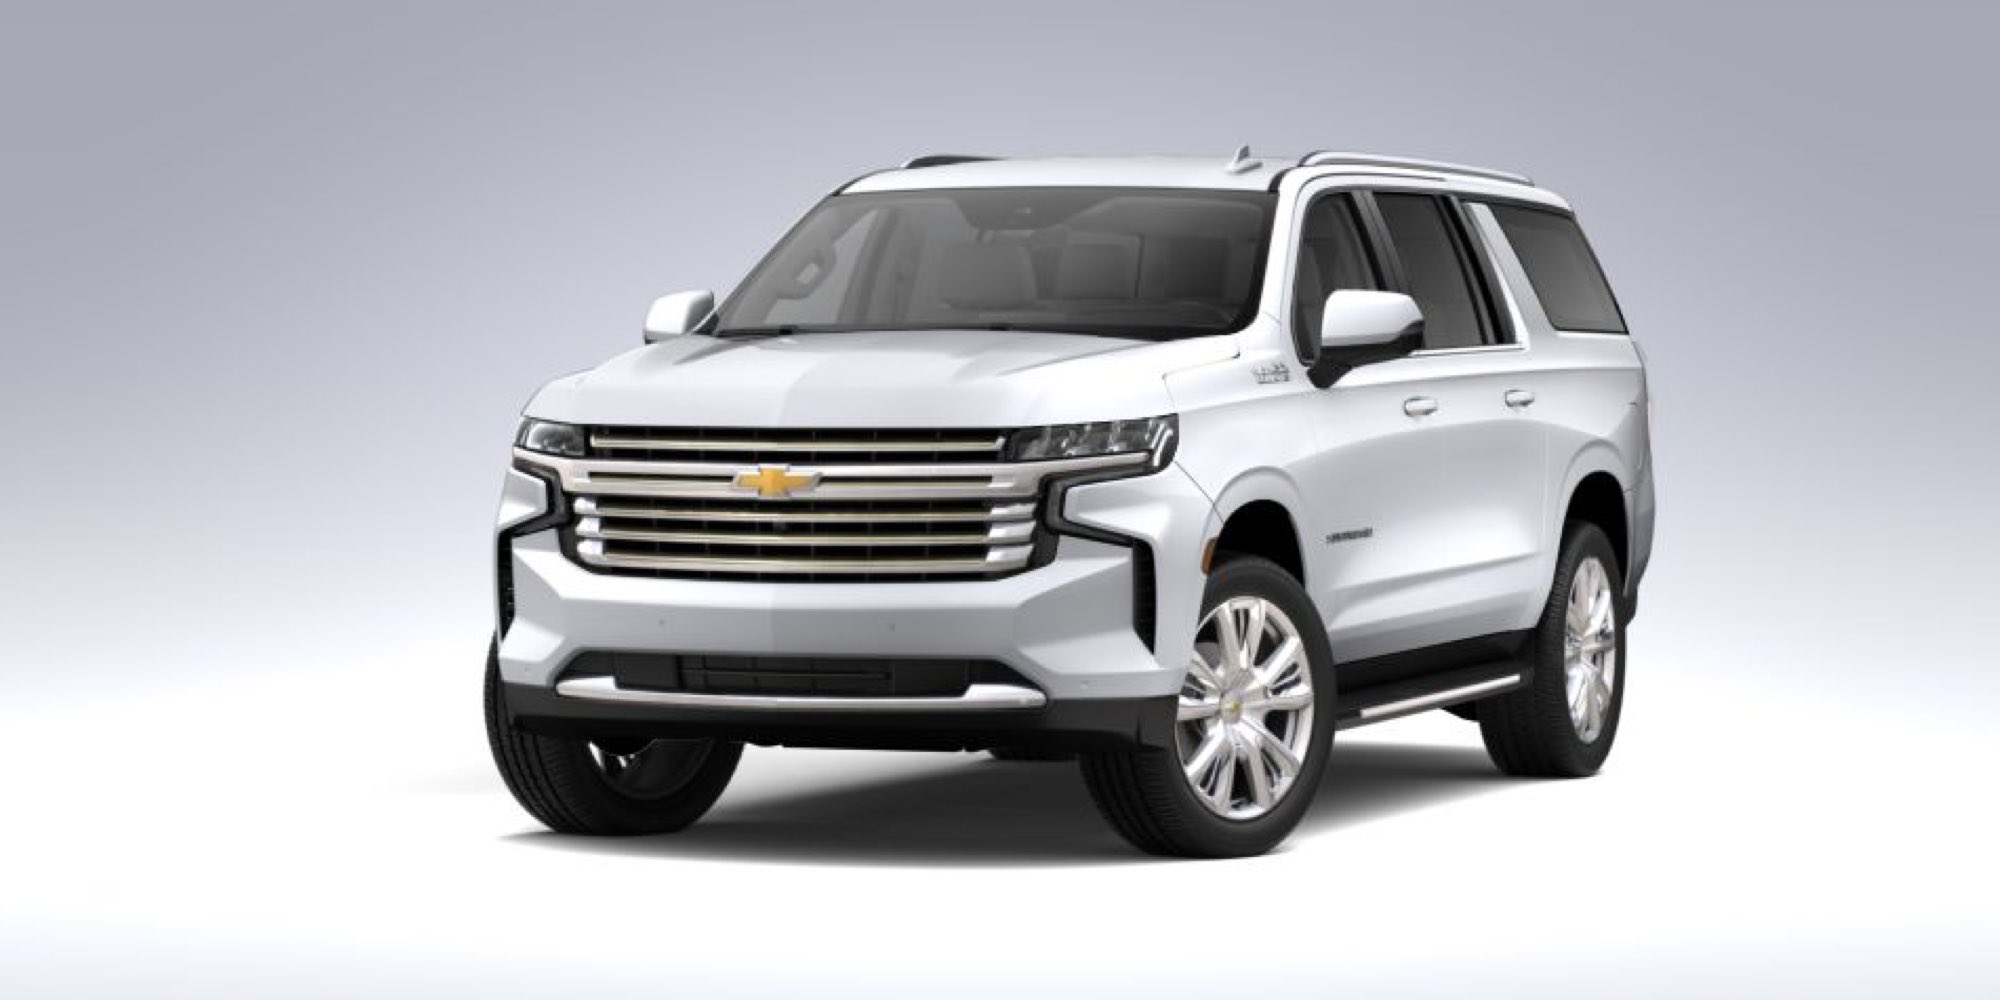 2021 Chevy Suburban in Summit White